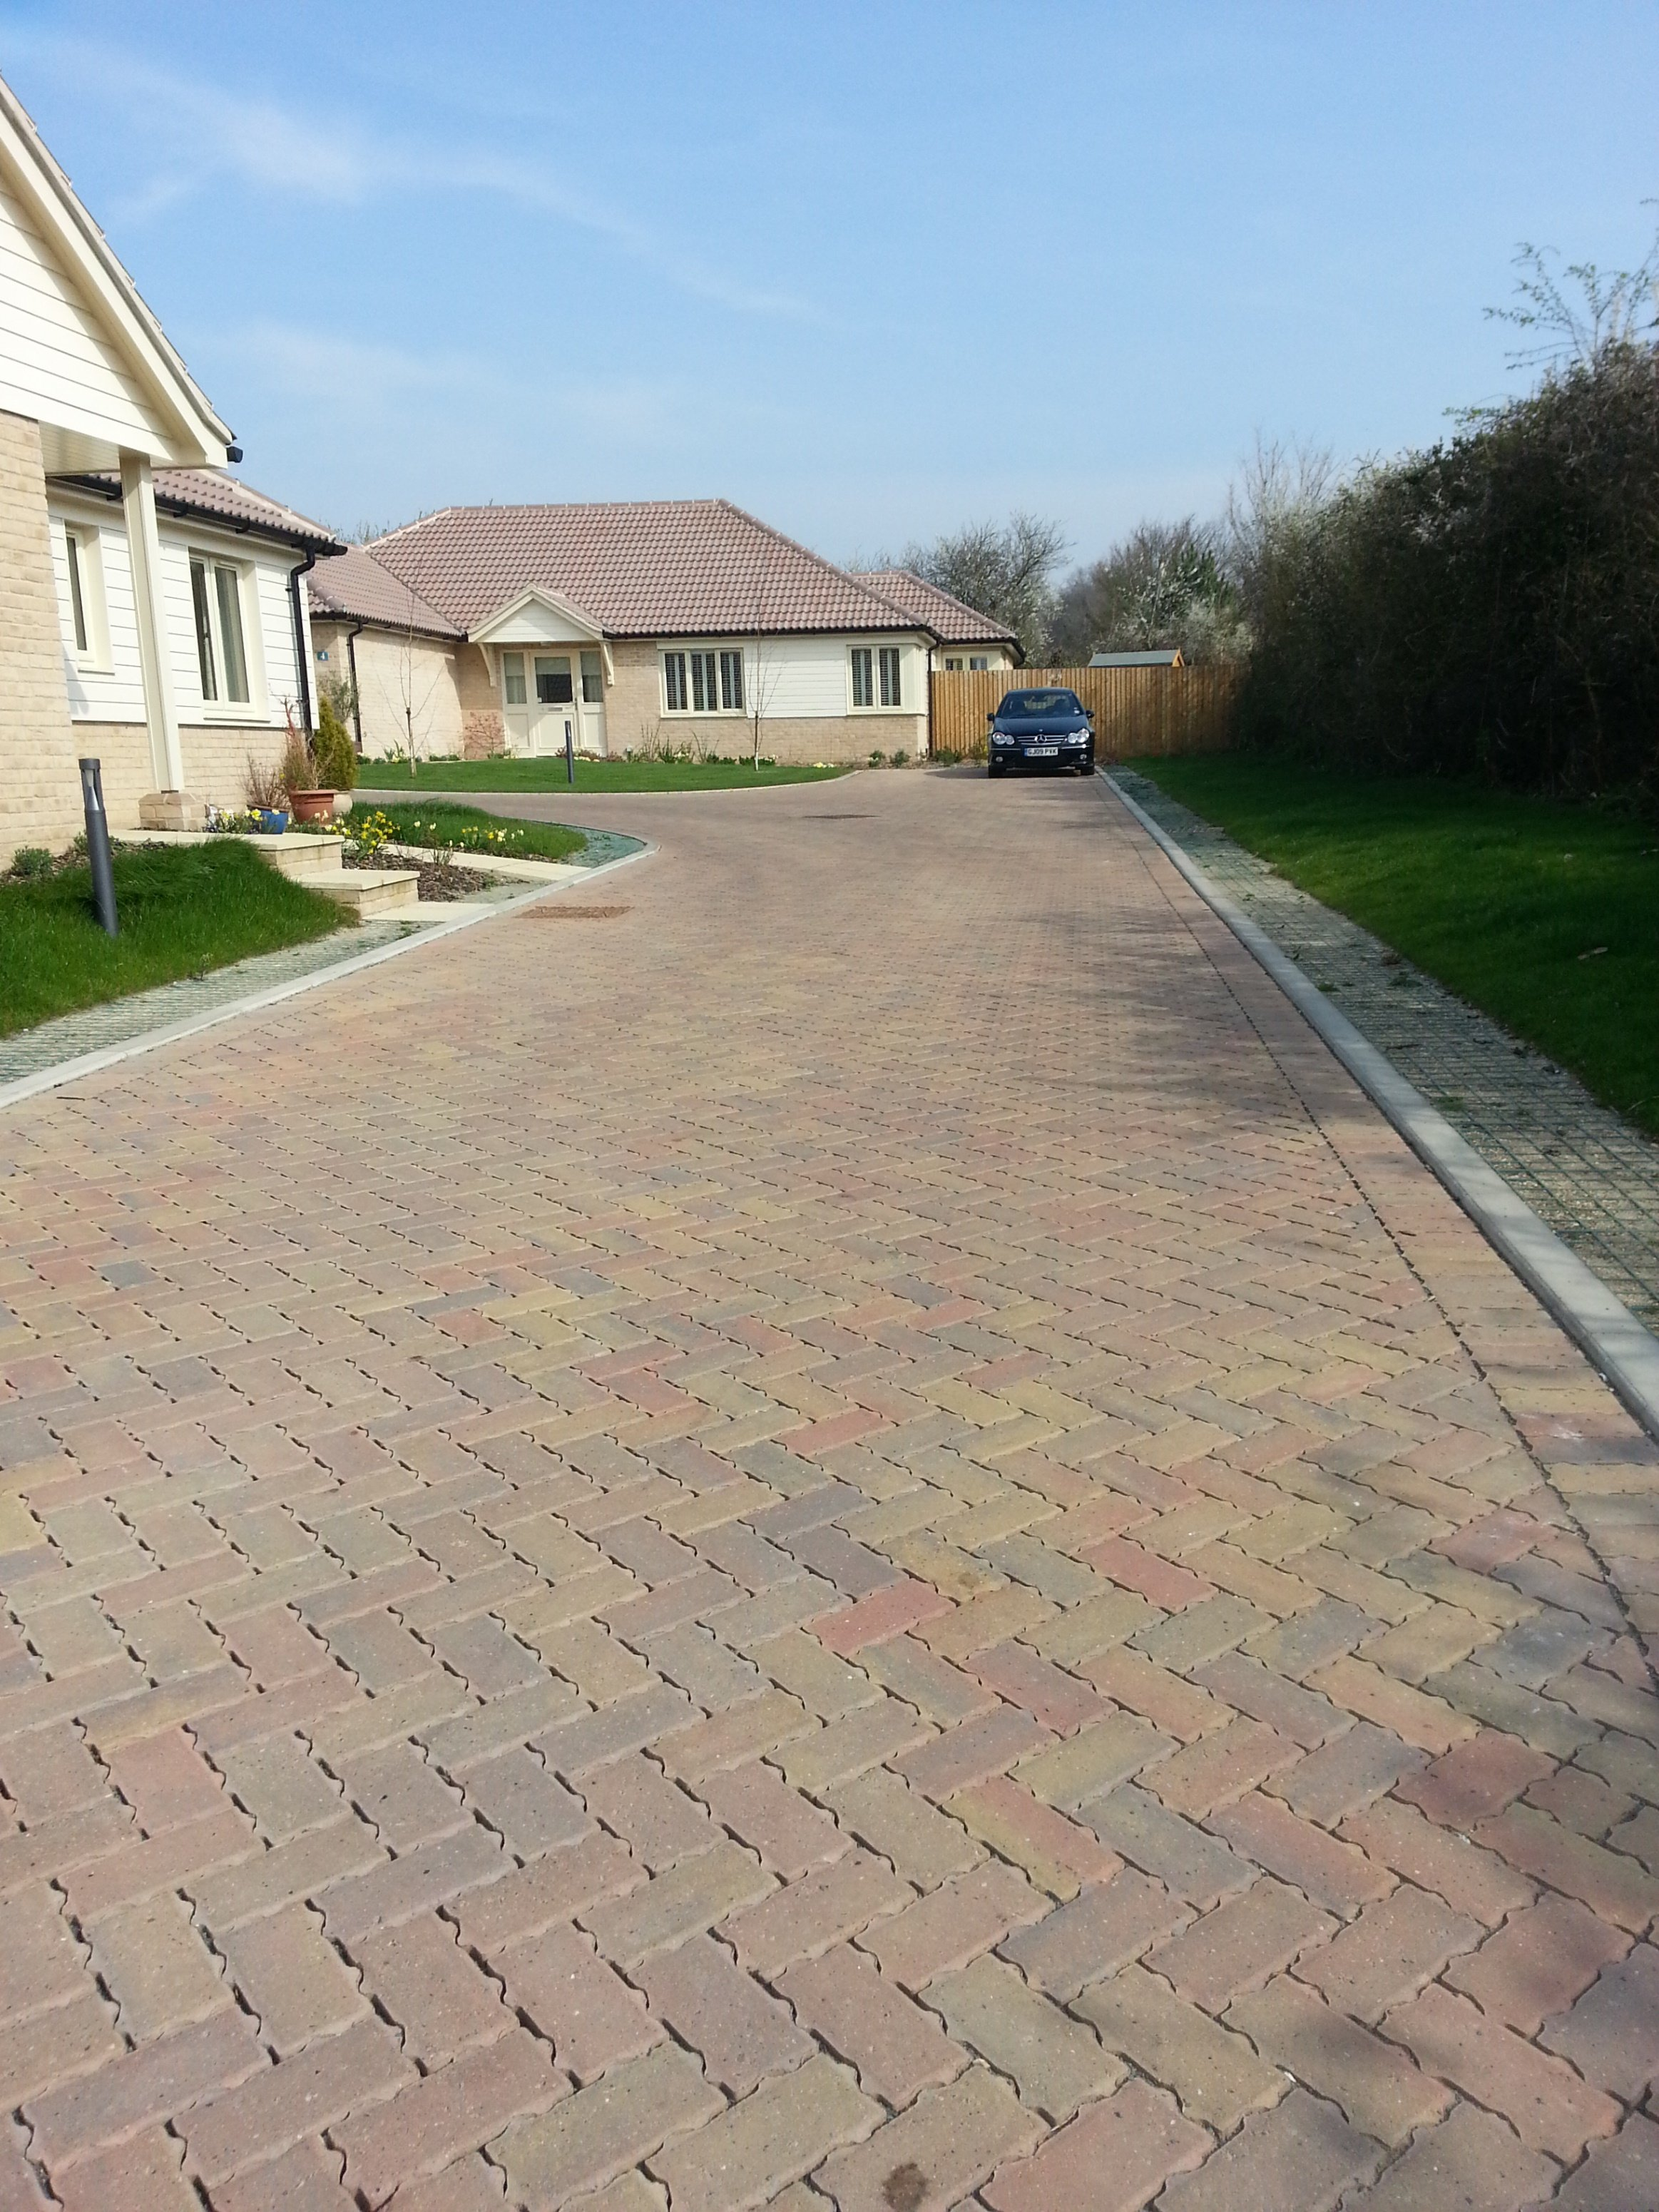 Brett Permeable Paving Expertise Proves Key For Developing a Challenging Site